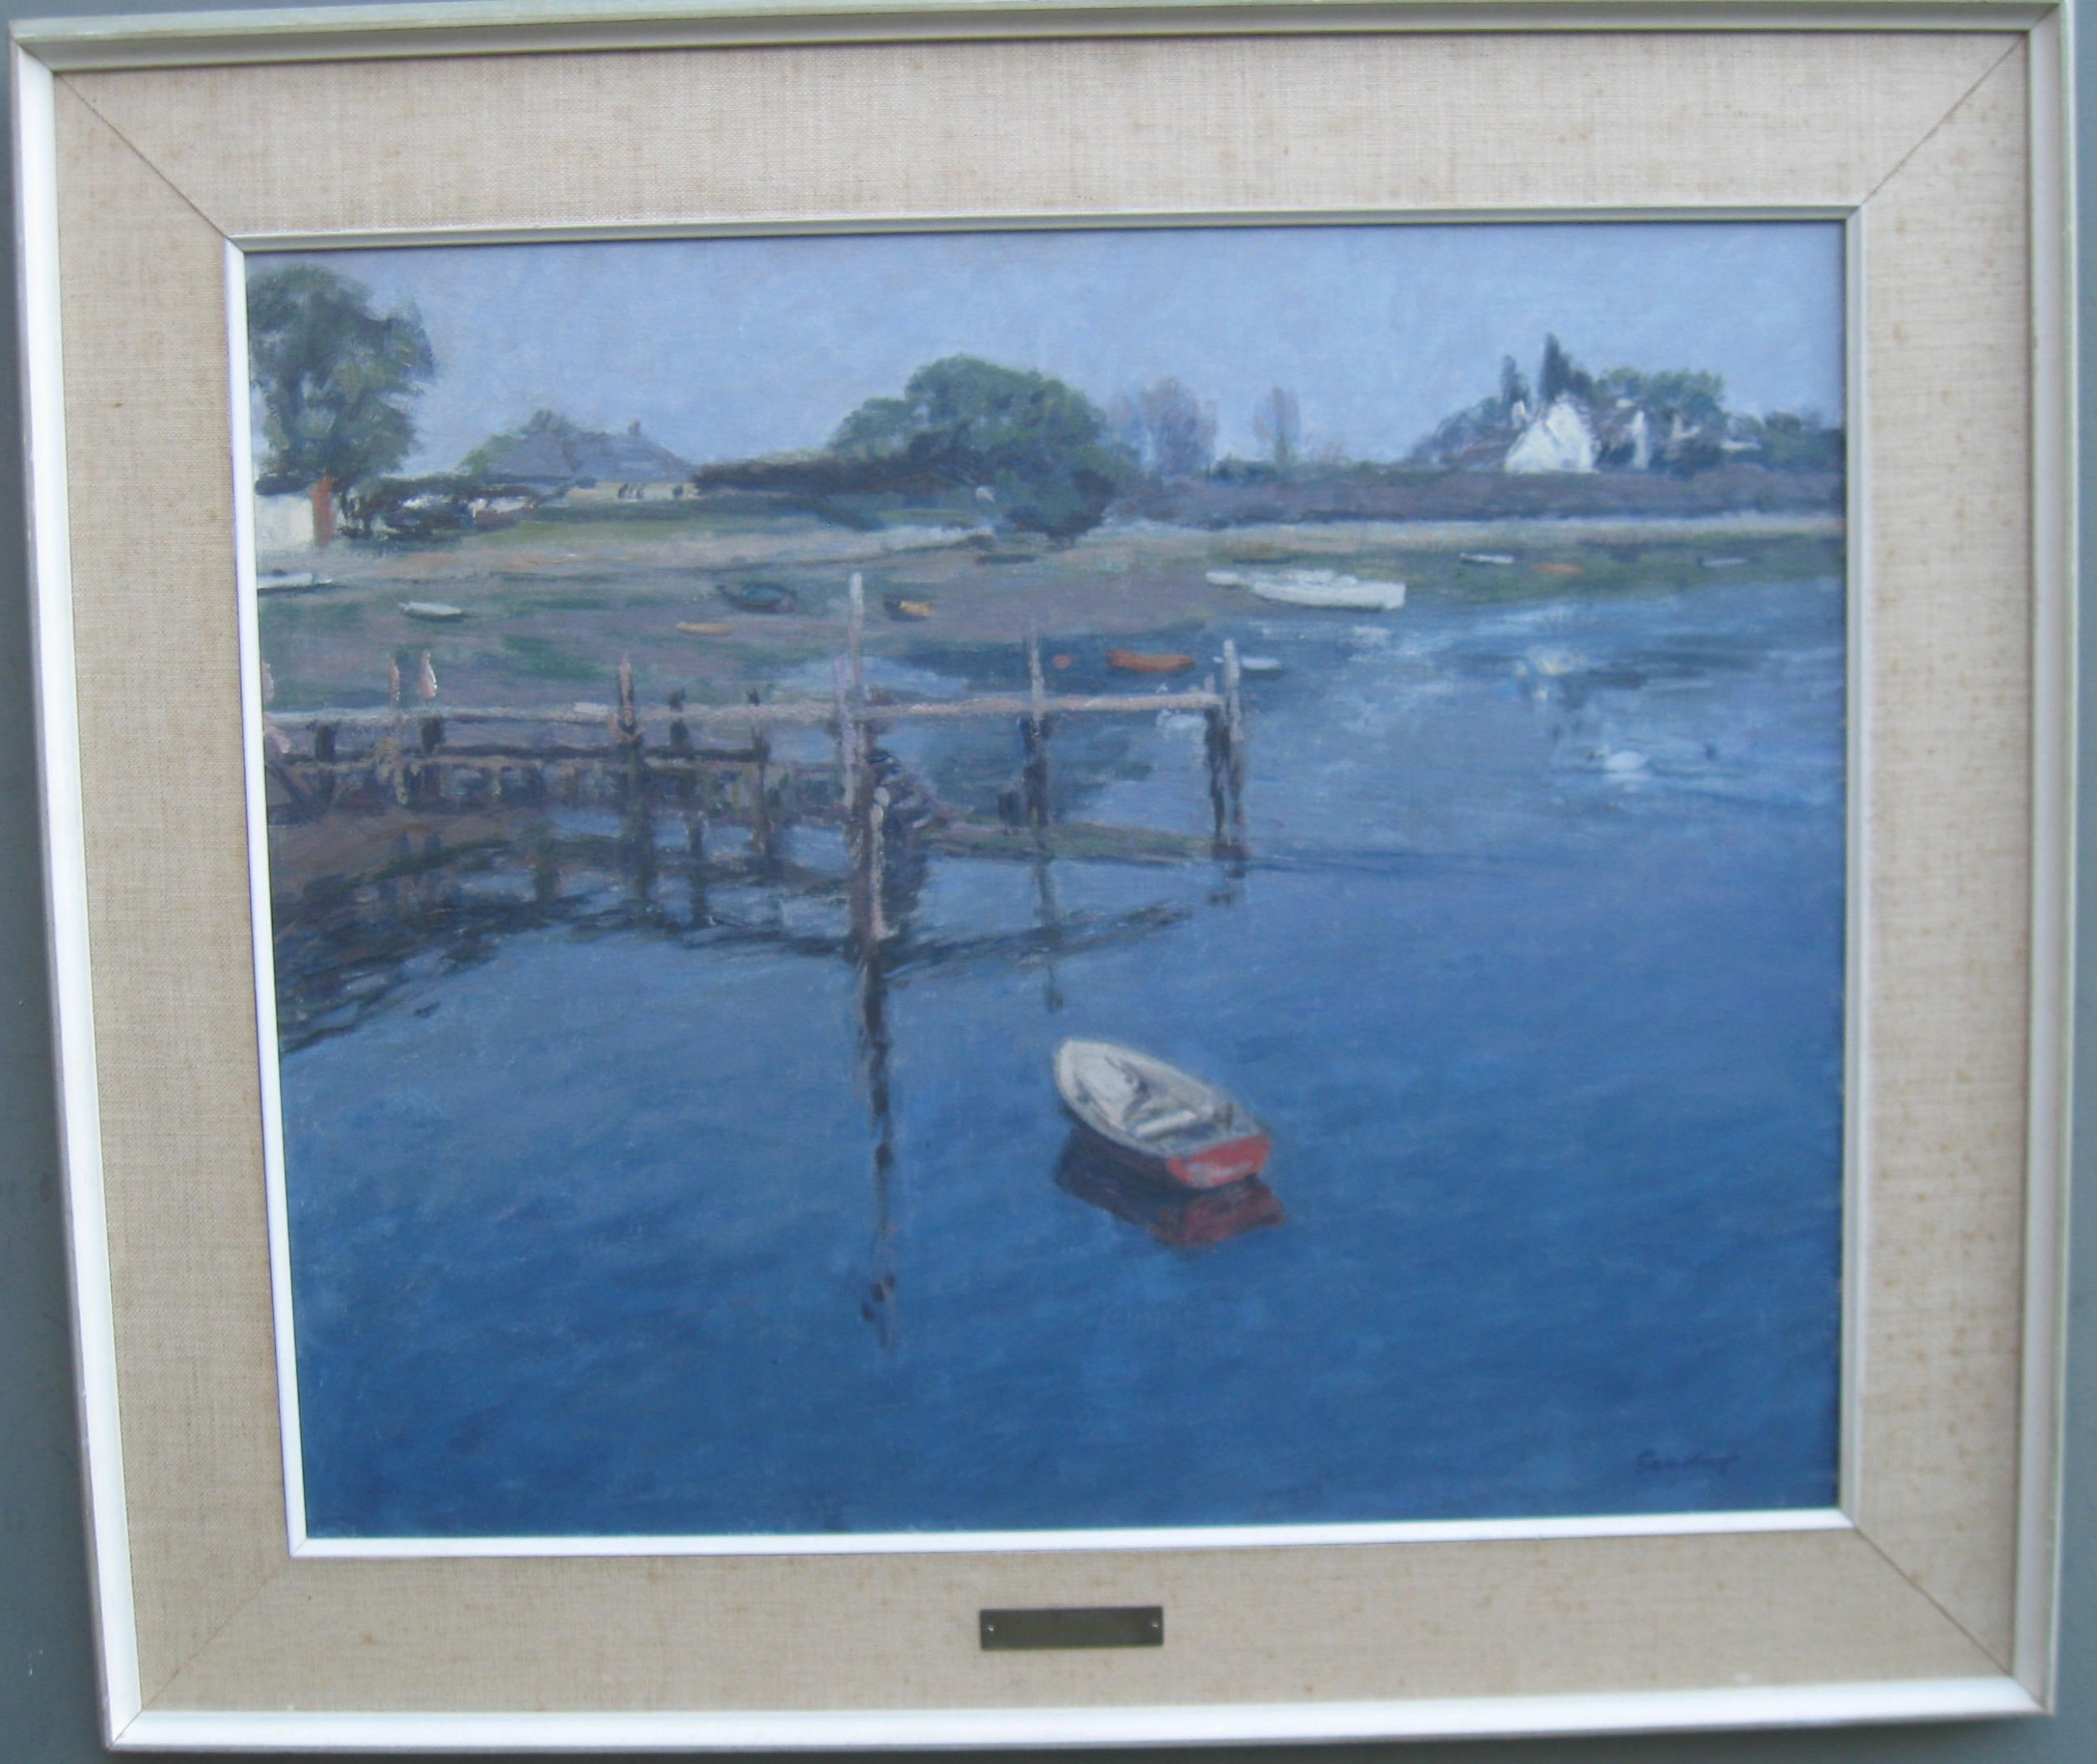 british impressionist christopher sanders ra 19051991 'the red dinghy' oil